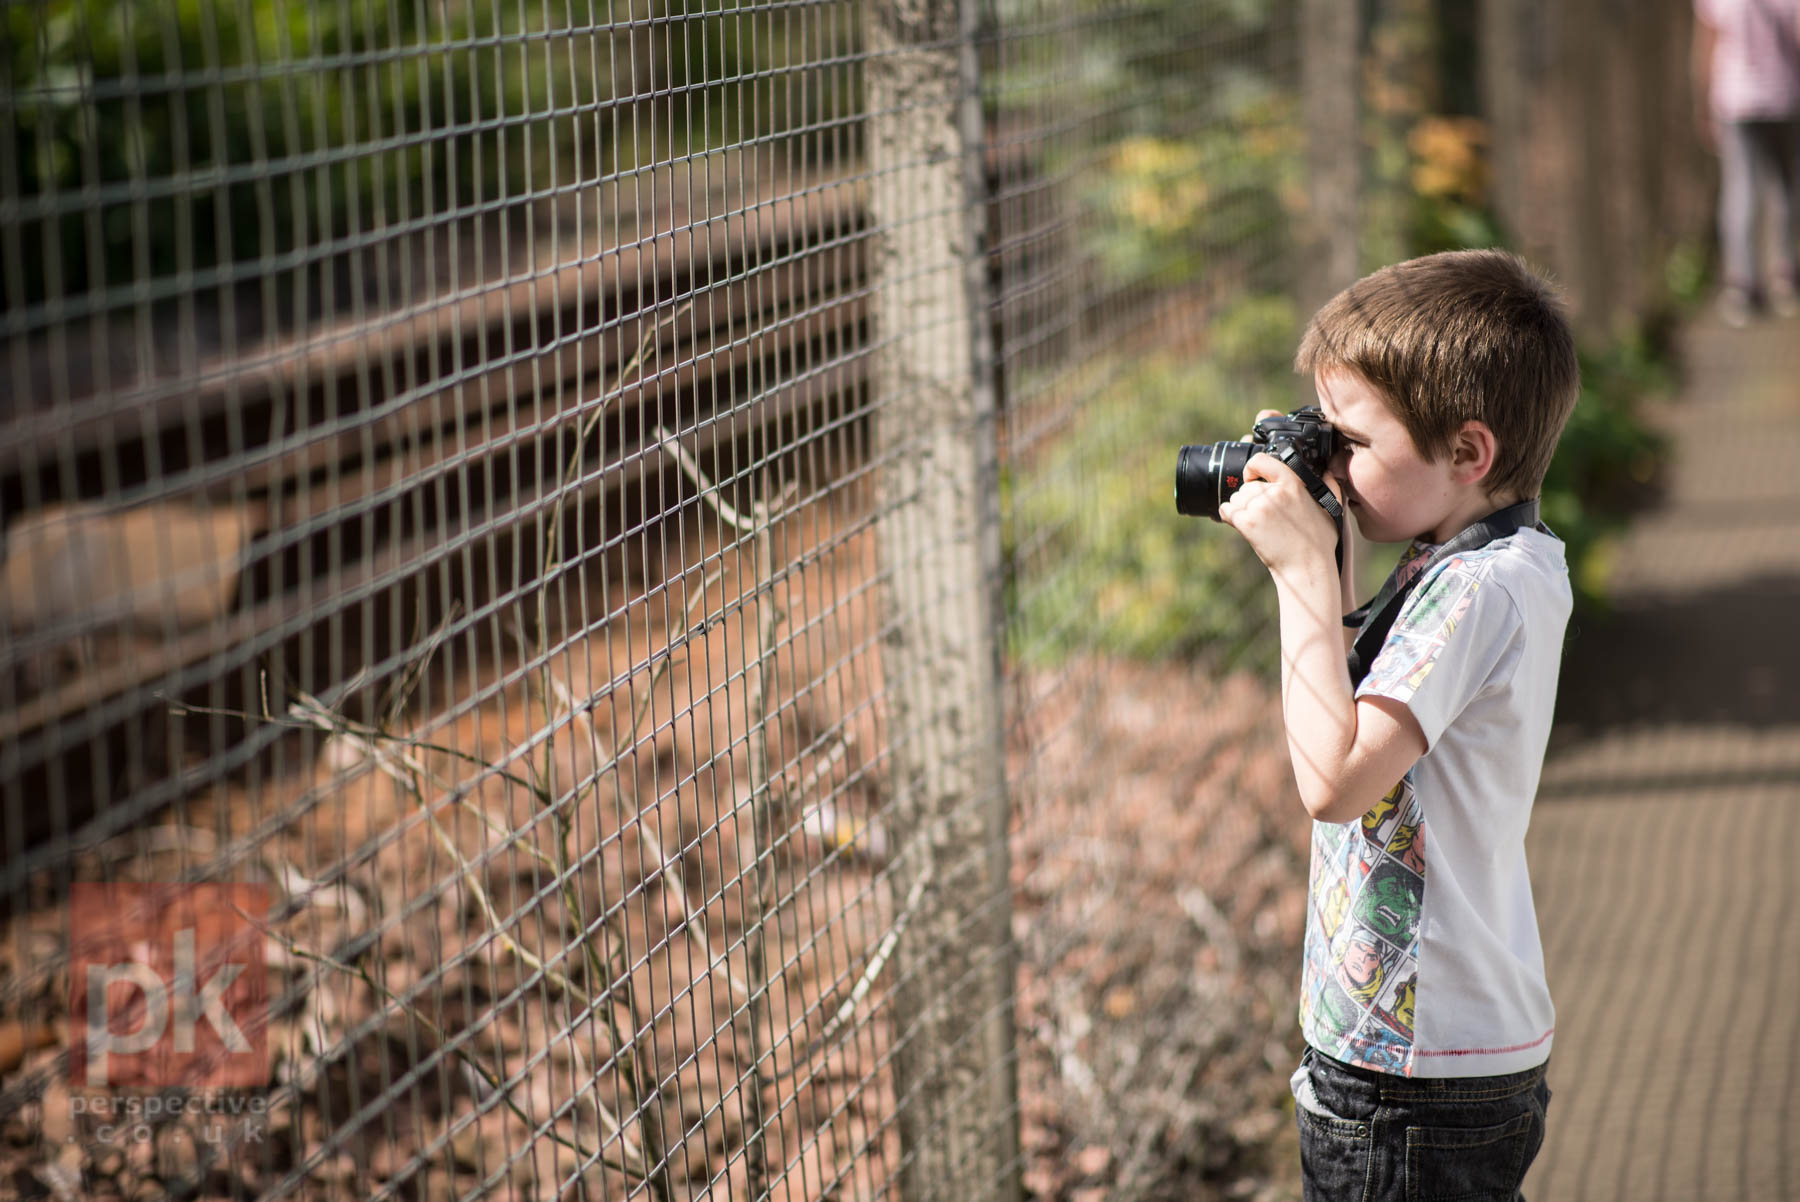 My son picked up a camera for the first time this year and was absolutely loving it. We're about to go for his Beavers Photography Badge too :)